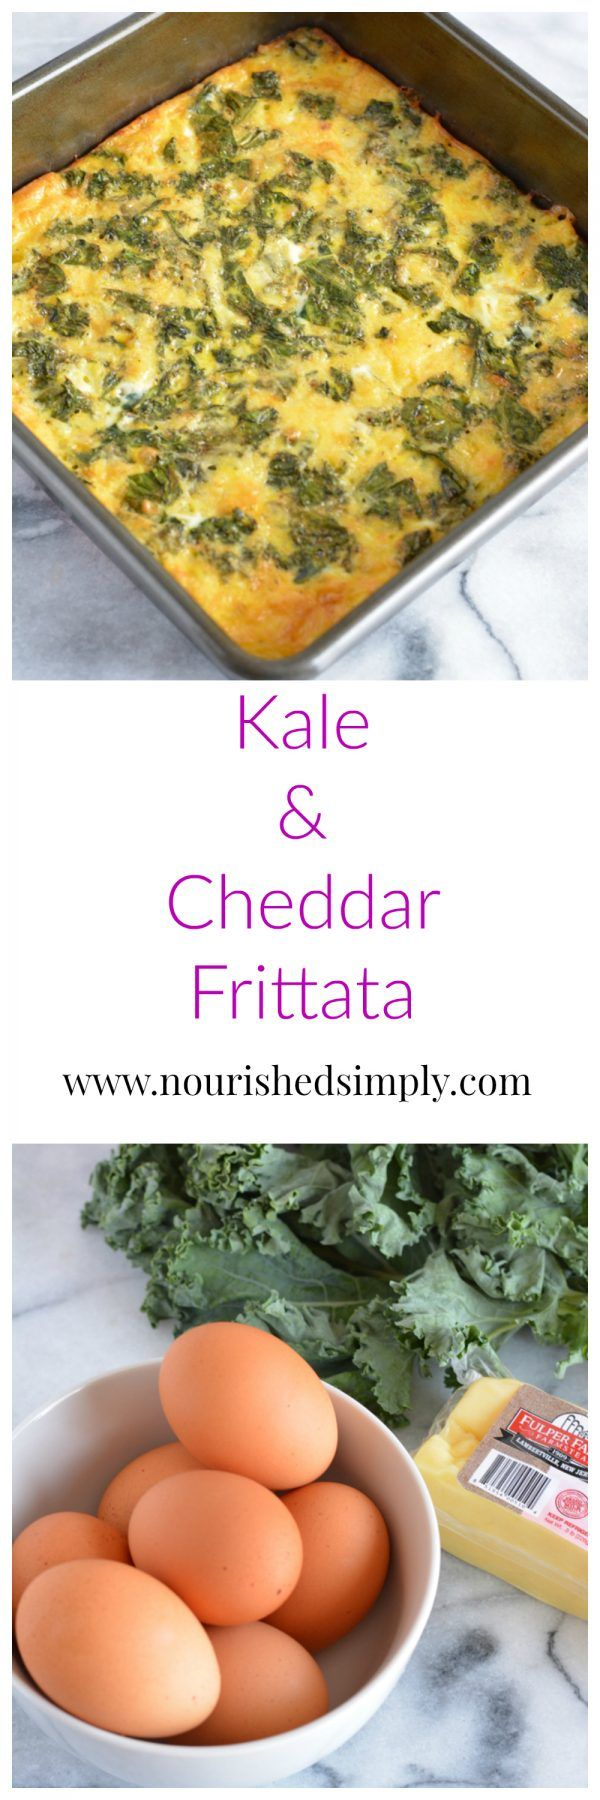 Kale and Cheddar Frittata ready in under 30 minutes is low in carbs and rich in protein. The recipe is also vegetarian and gluten free.